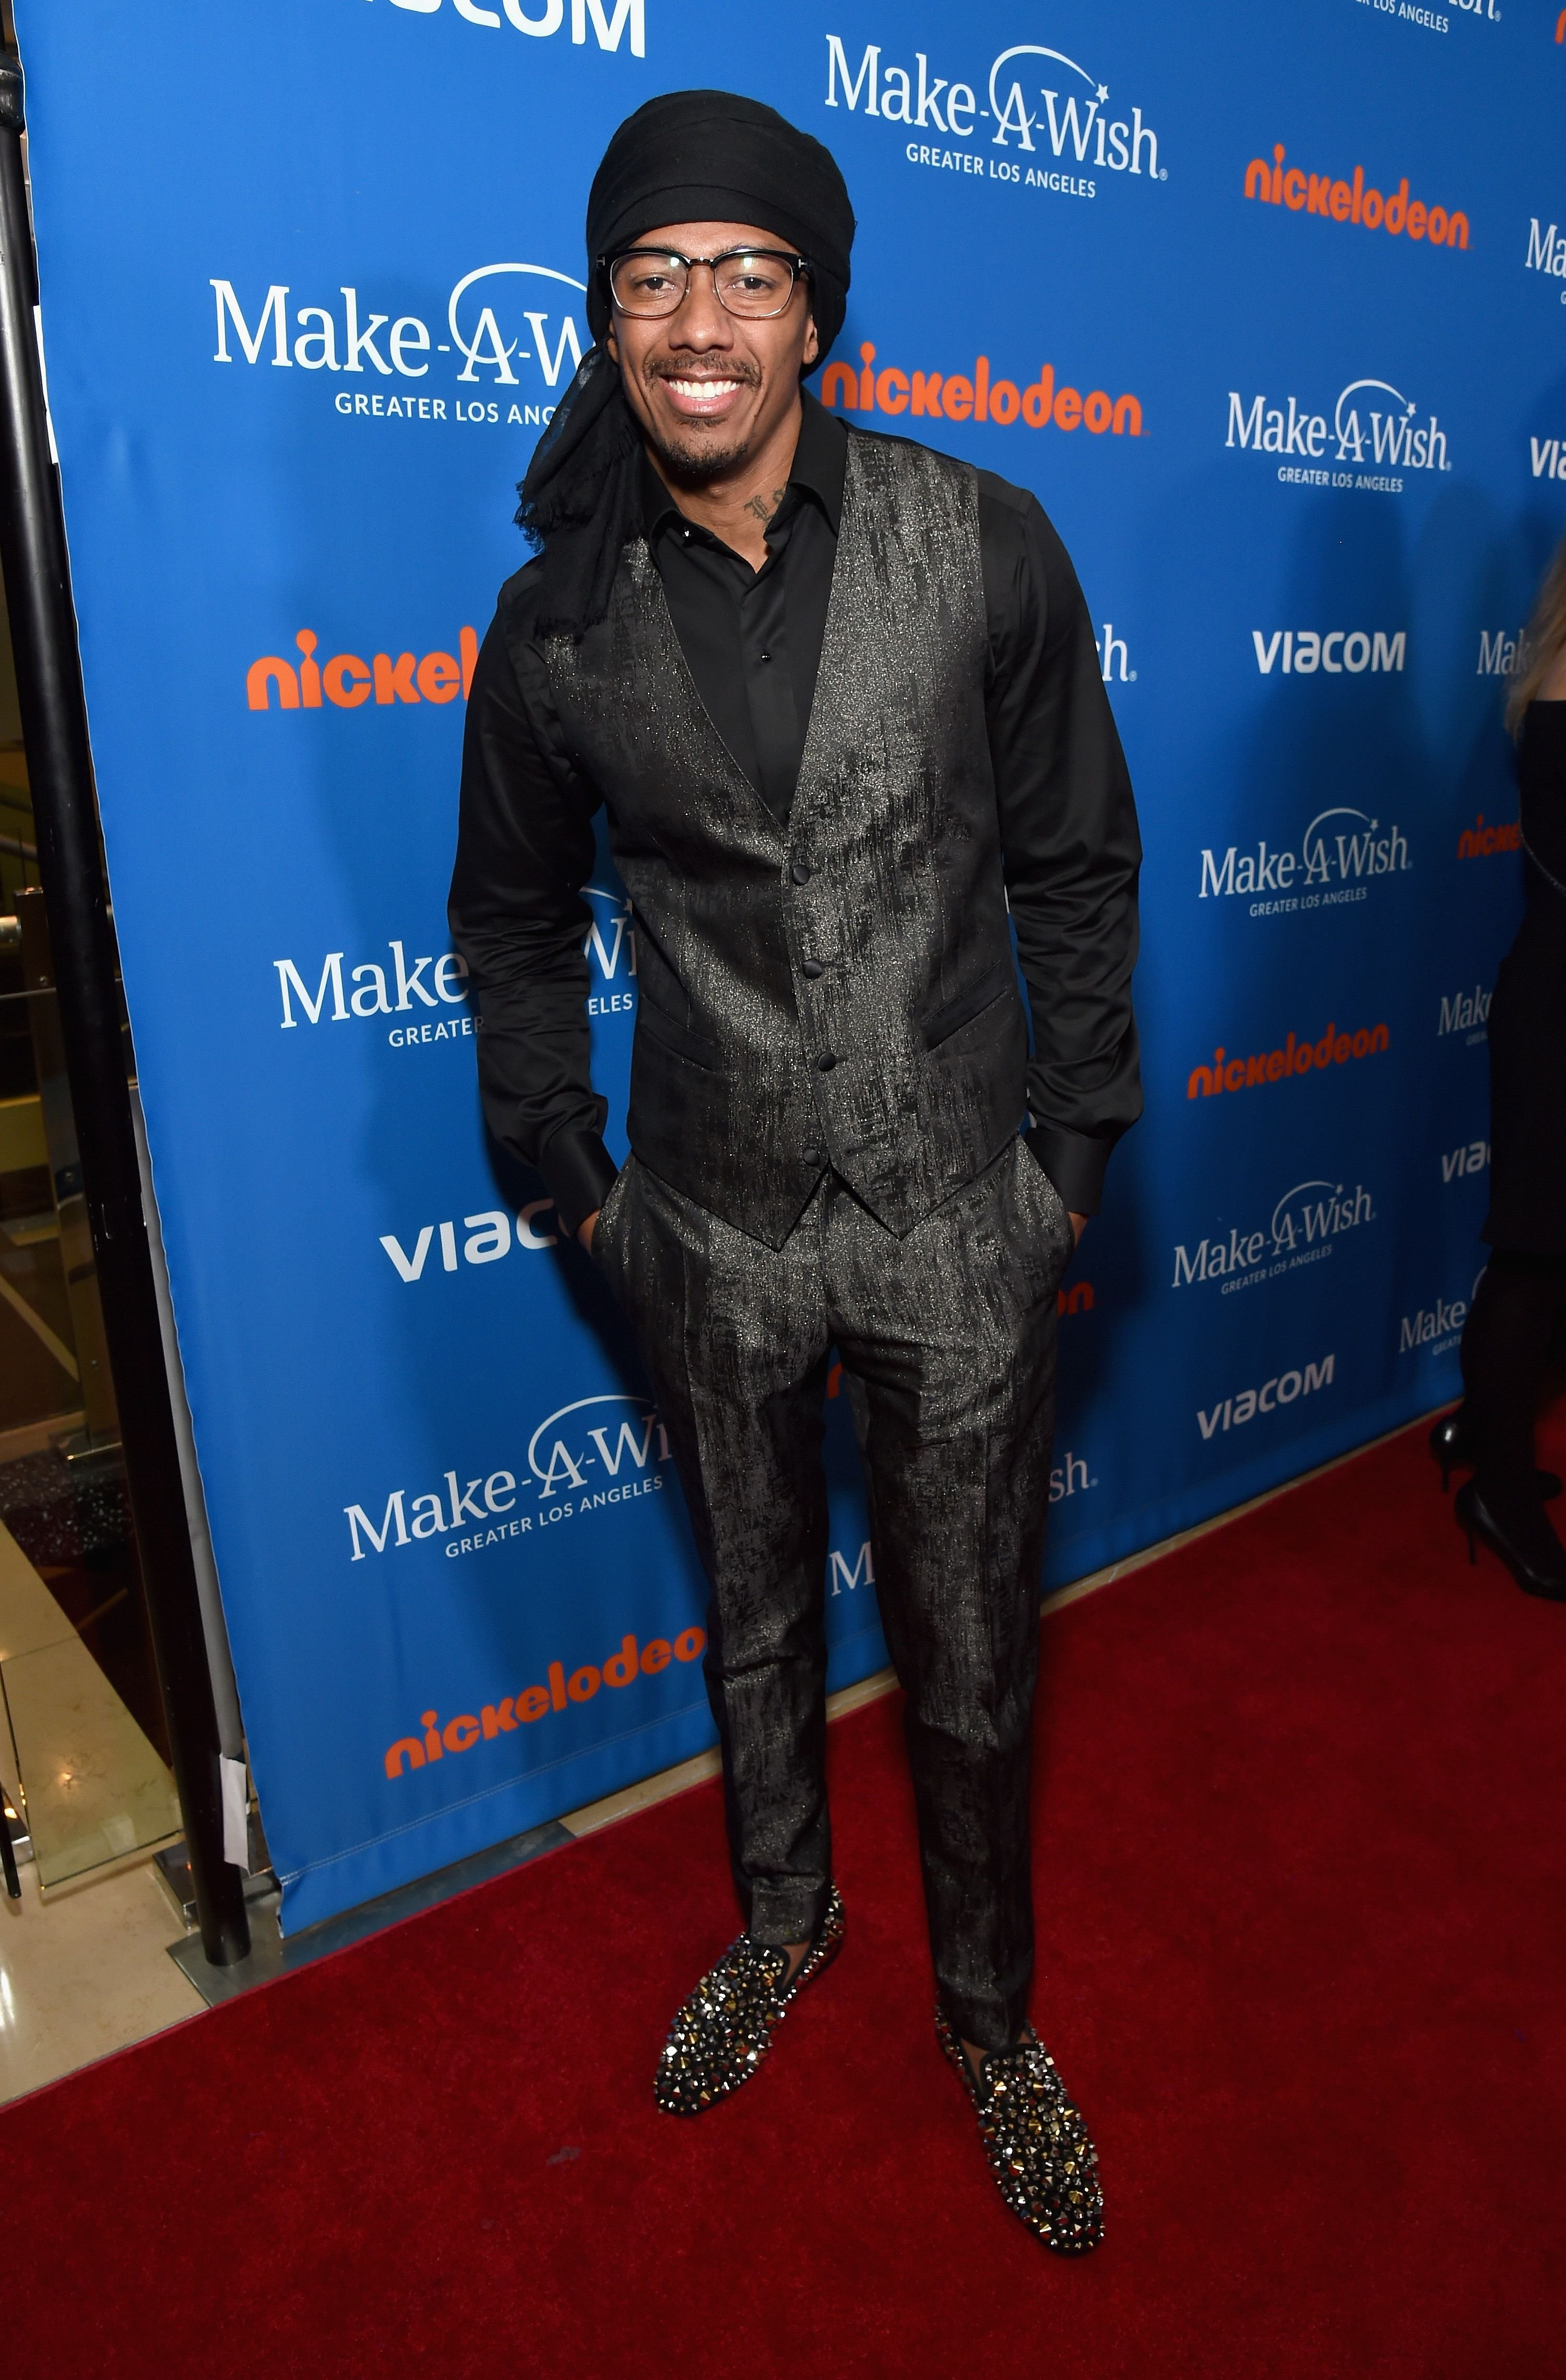 Nick Cannon arrives at the 2018 Make A Wish Gala at The Beverly Hilton Hotel on October 24, 2018. | Photo: Getty Images